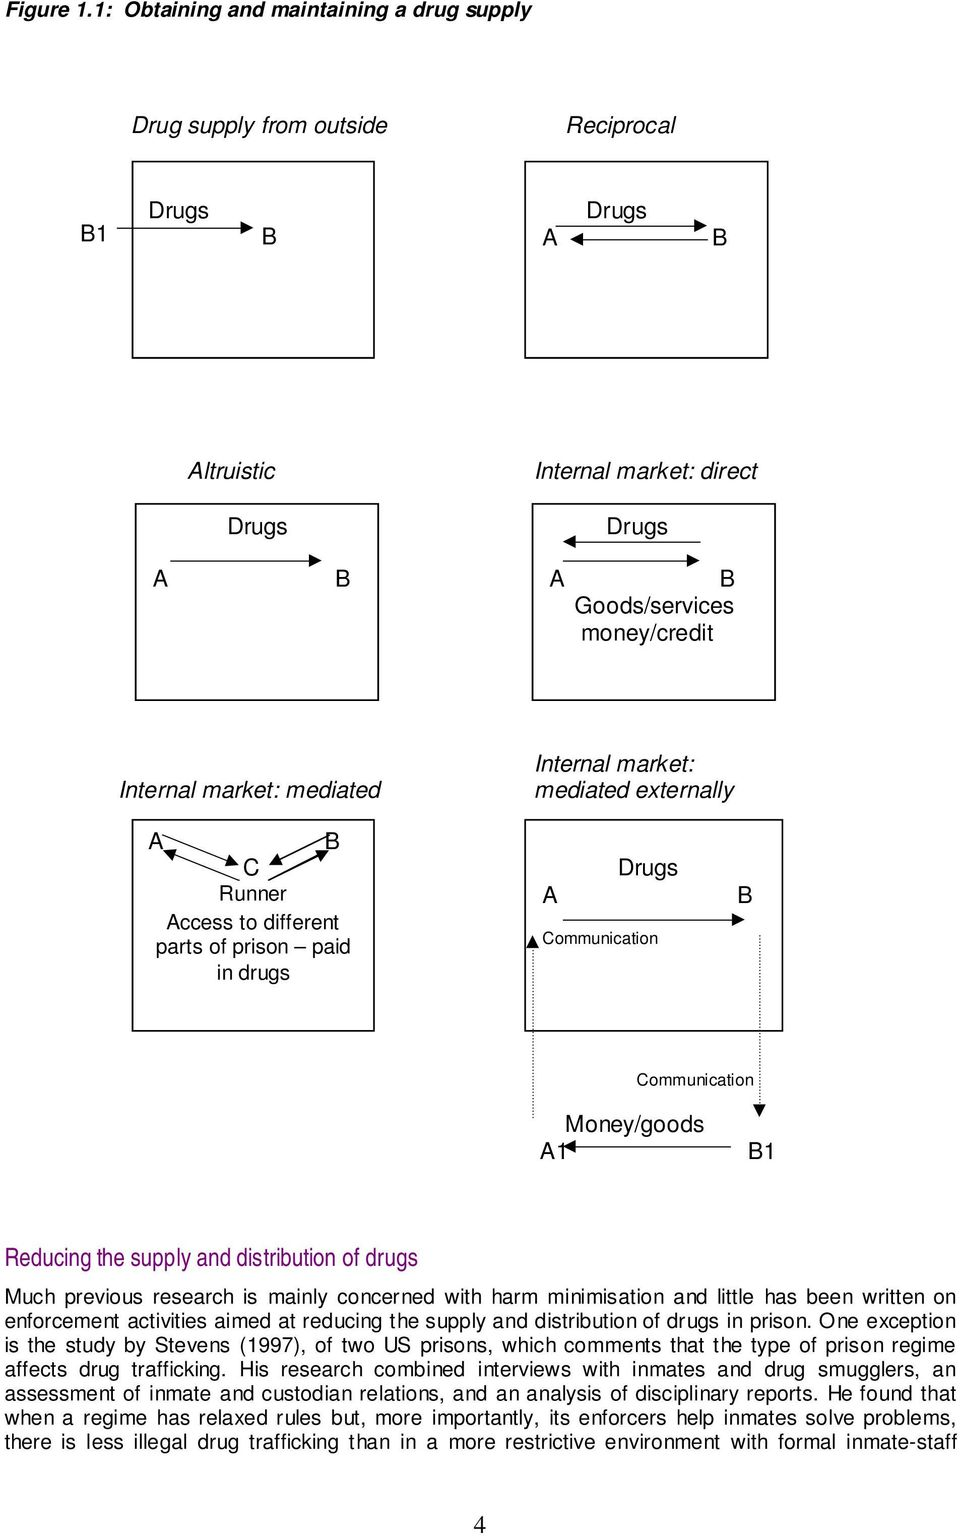 market: mediated A B C Runner Access to different parts of prison paid in drugs Internal market: mediated externally Drugs A Communication B Communication Money/goods A1 B1 Reducing the supply and